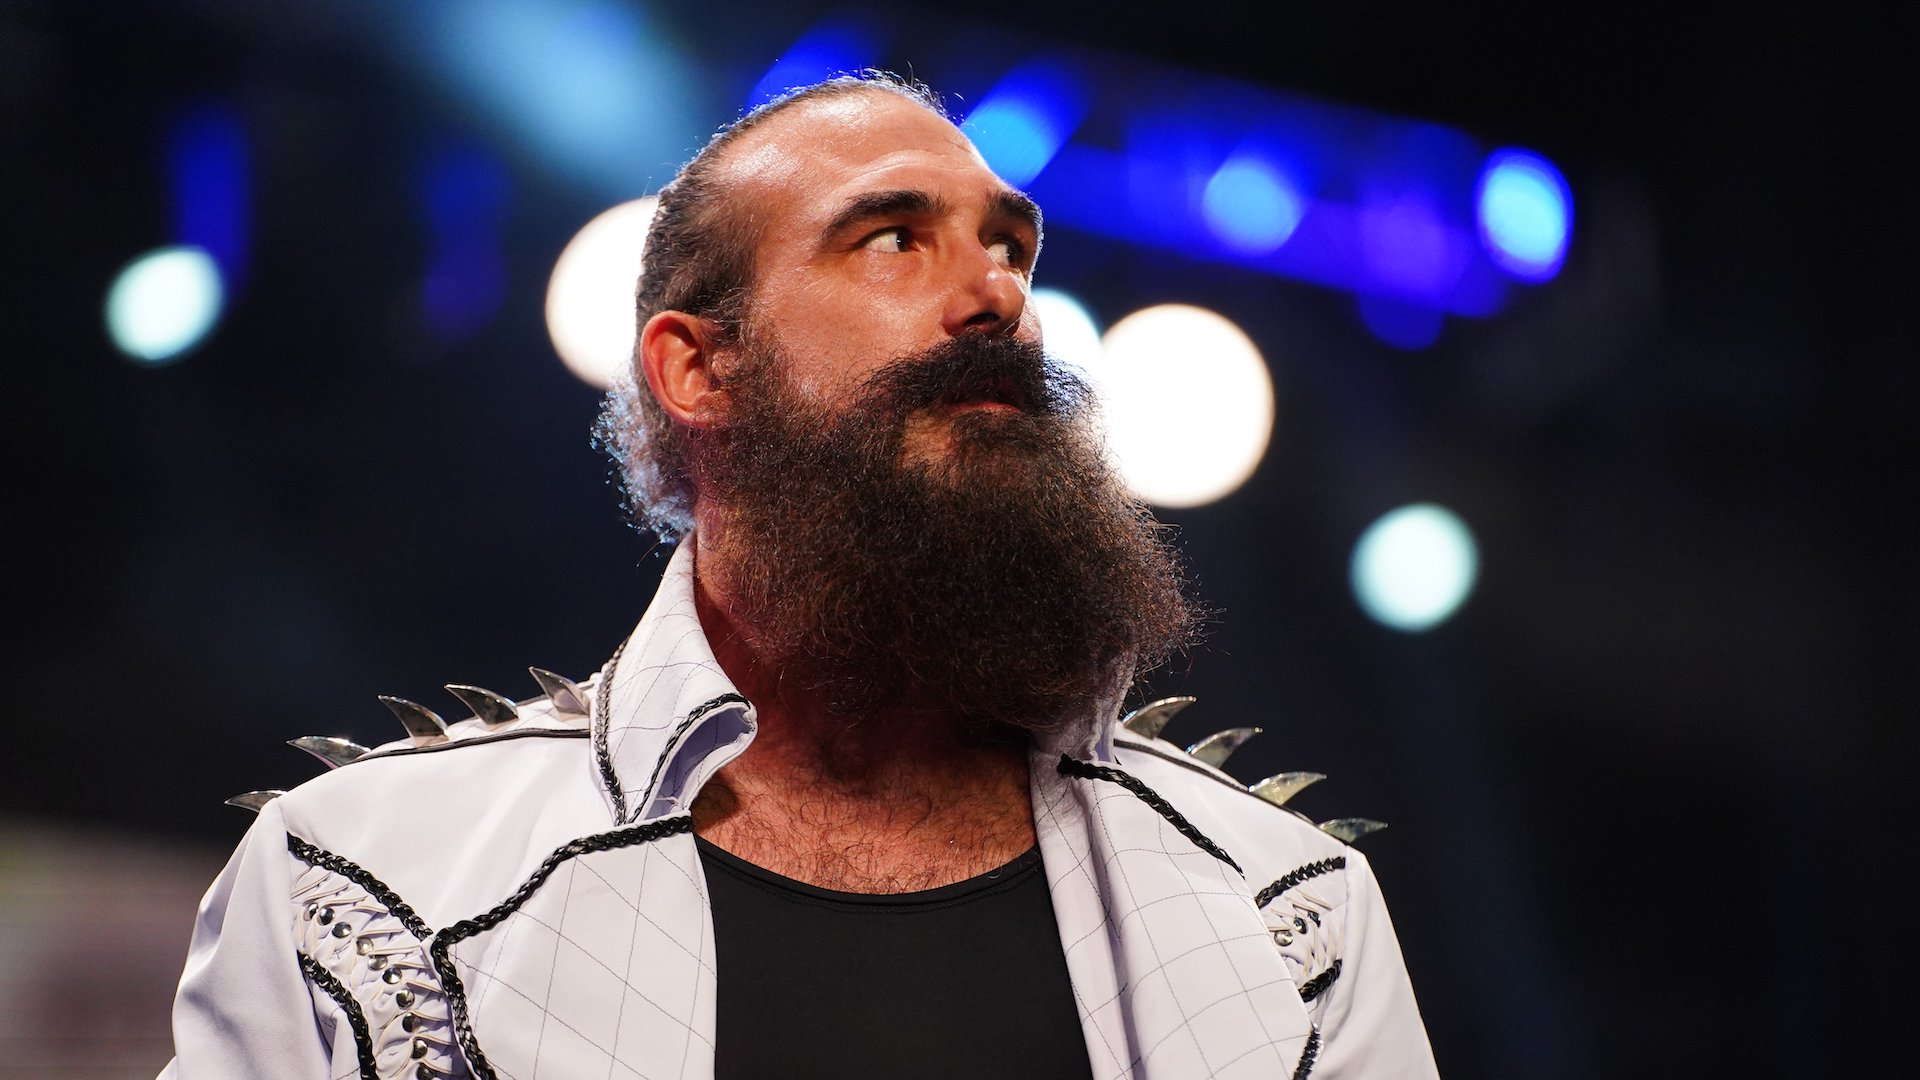 WWE & MLW Tributes to Brodie Lee, More Brodie Lee News, New Trademarks, Ratings Note – TPWW